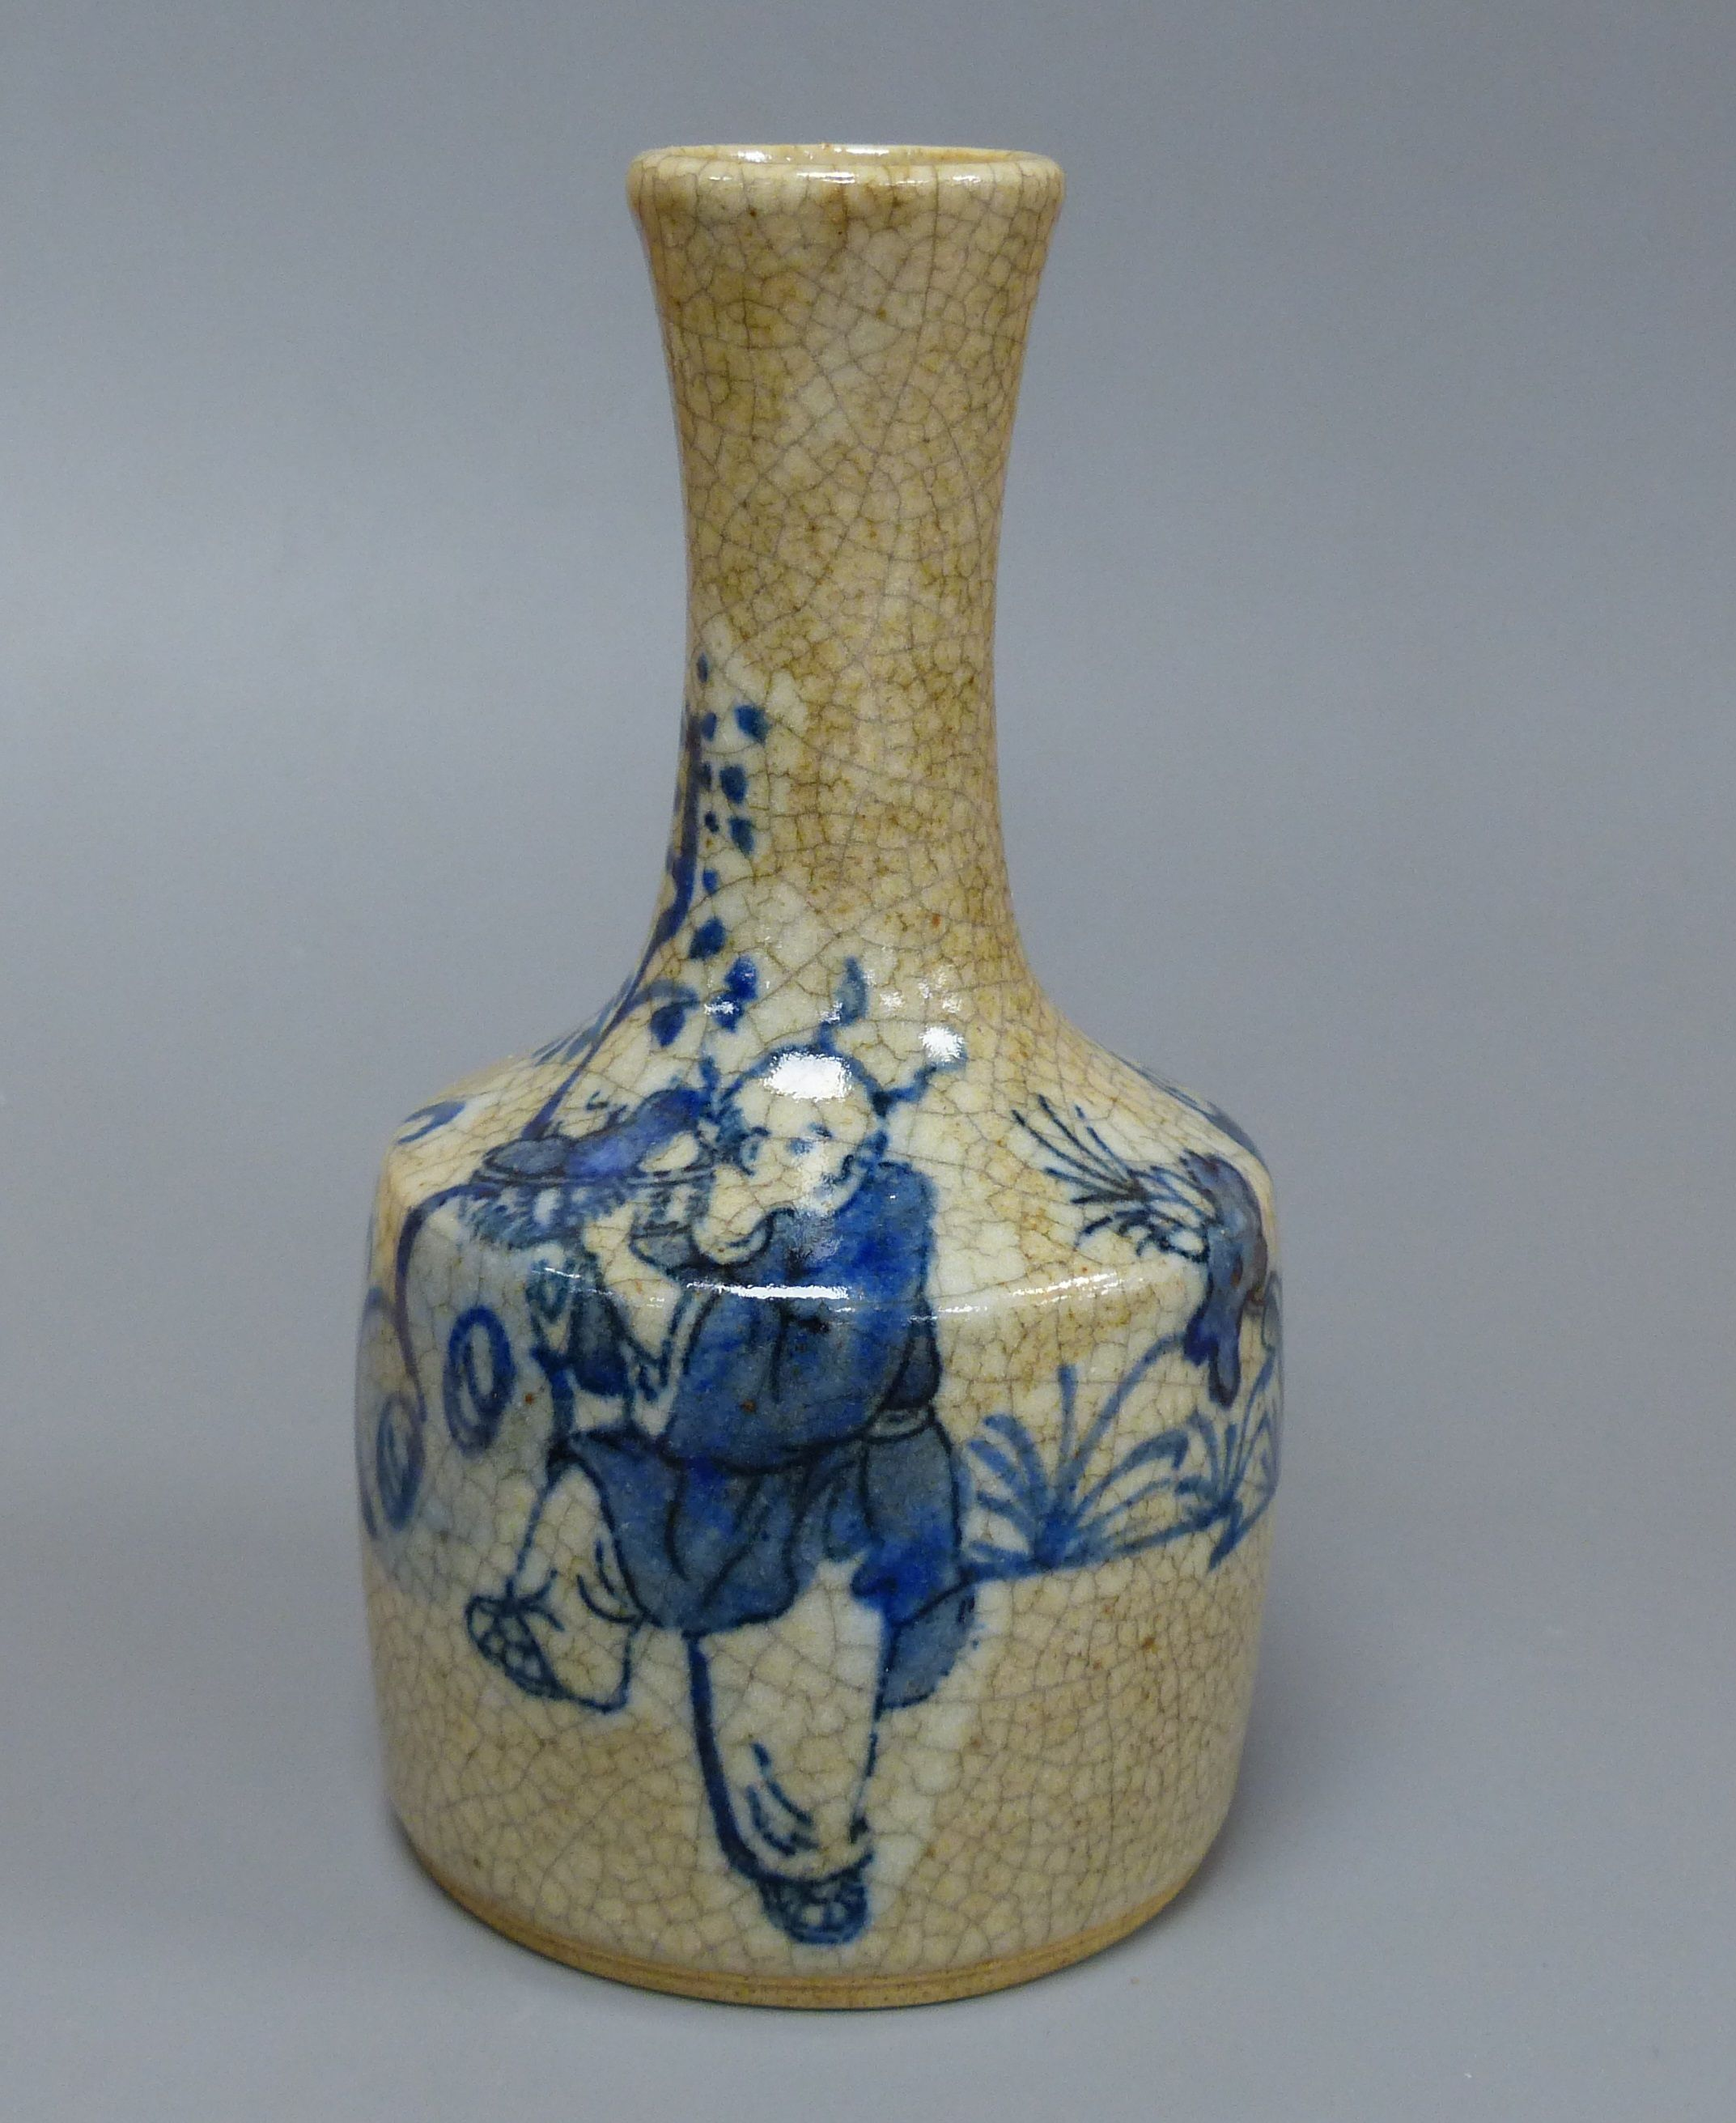 A Chinese blue and white crackle glaze bottle vase, height 15cm - Image 2 of 6